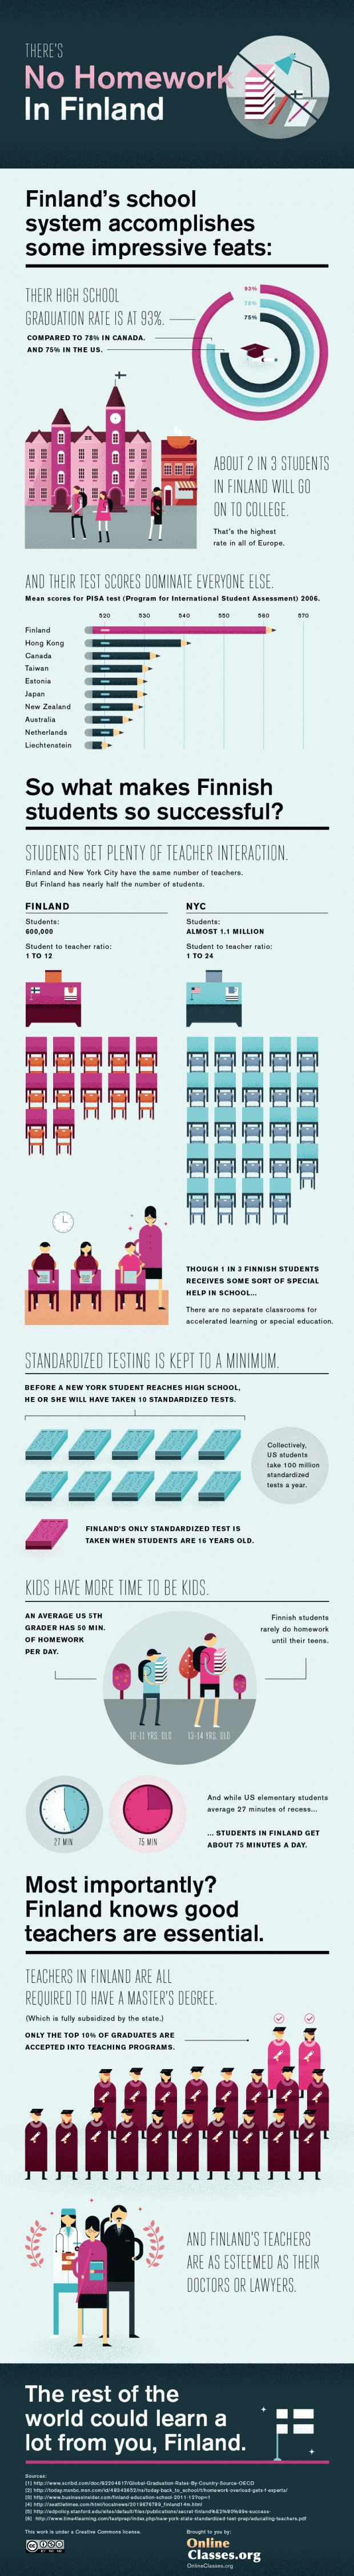 Why Are Finland's Schools Successful? | Innovation ...